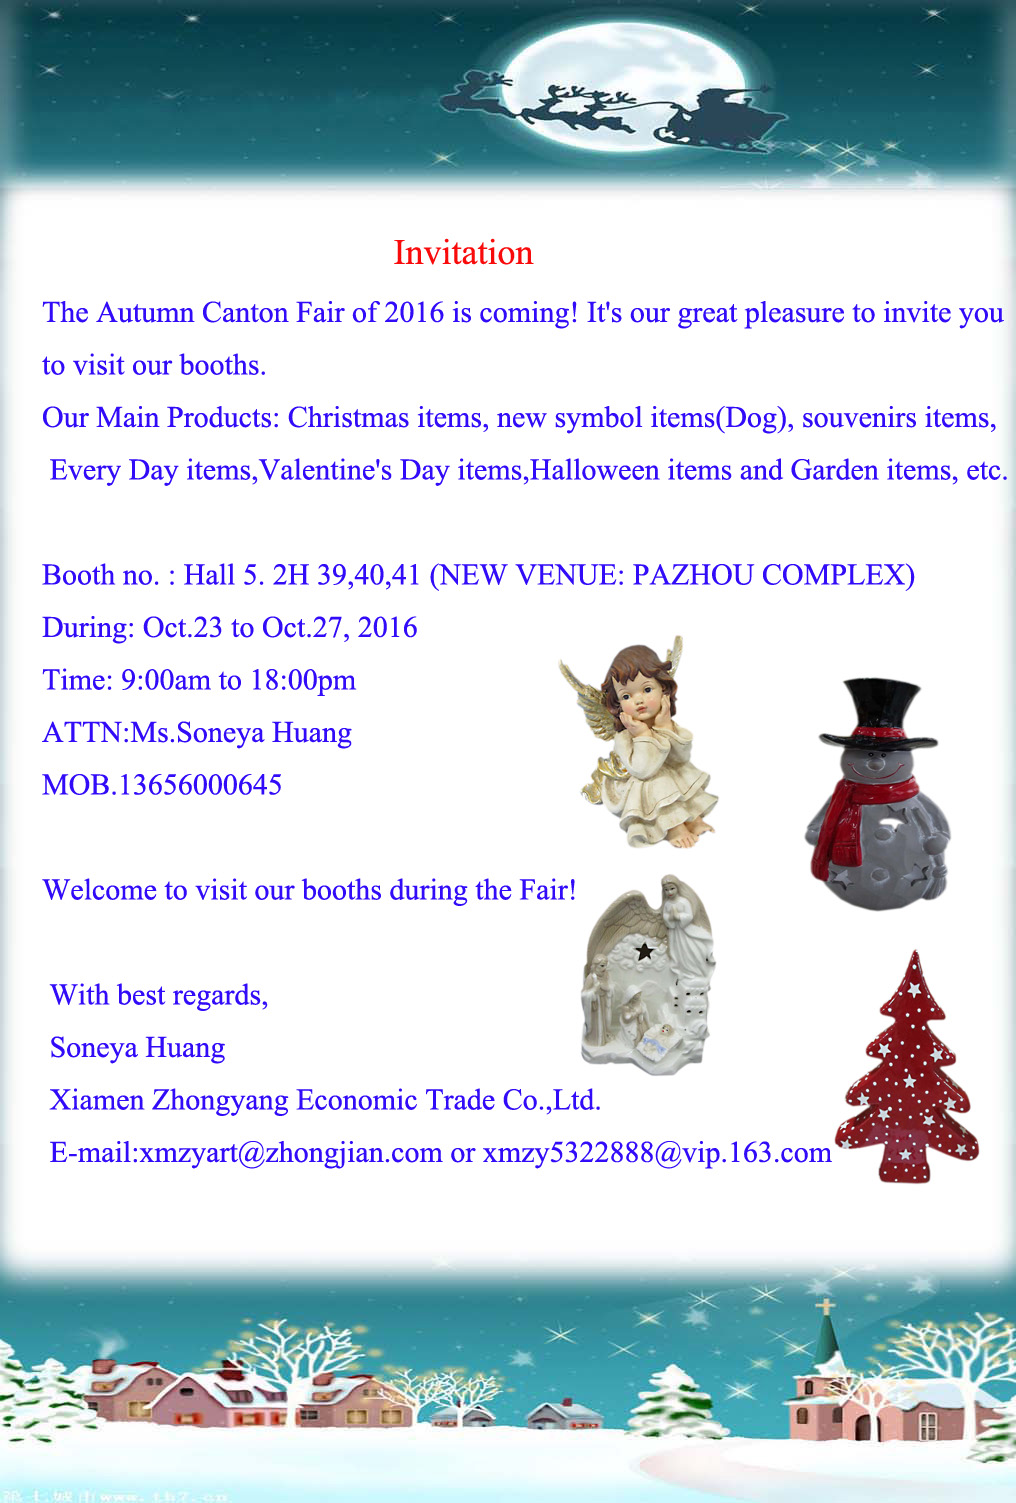 120th Autumn Canton Fair Invitation